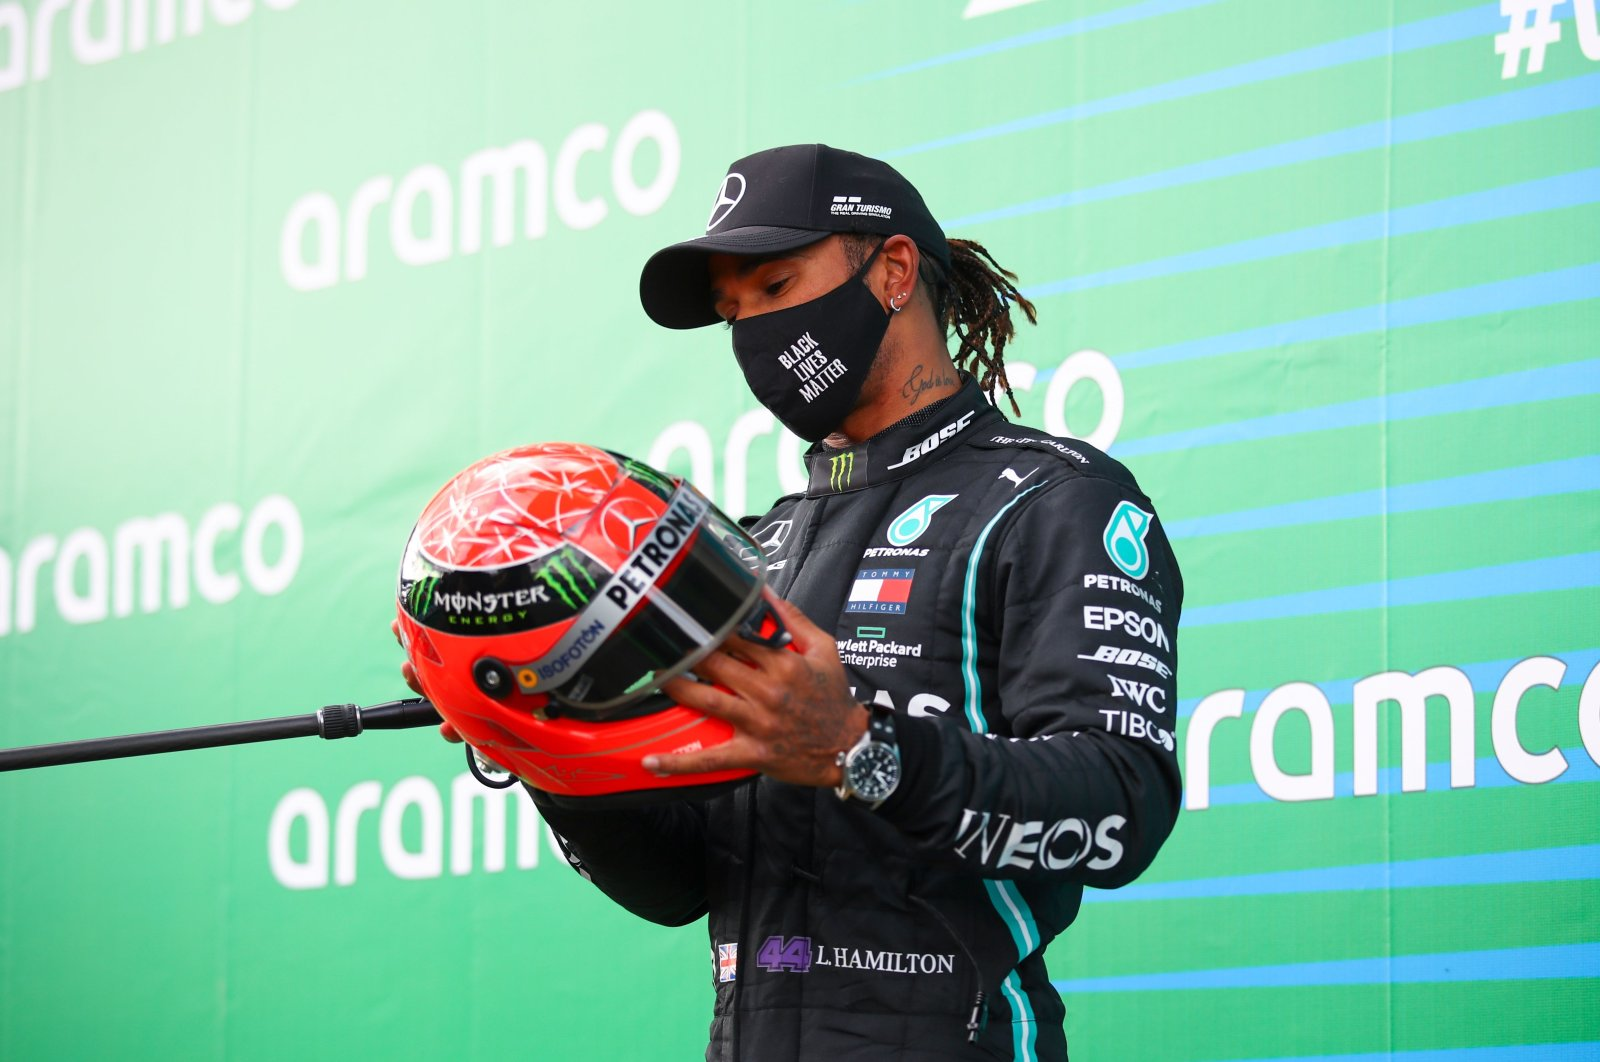 Lewis Hamilton holds the helmet of Michael Schumacher that was gifted to him, after winning the German F1 Grand Prix, in Nurburg, Germany, Oct. 11, 2020. (AFP Photo)